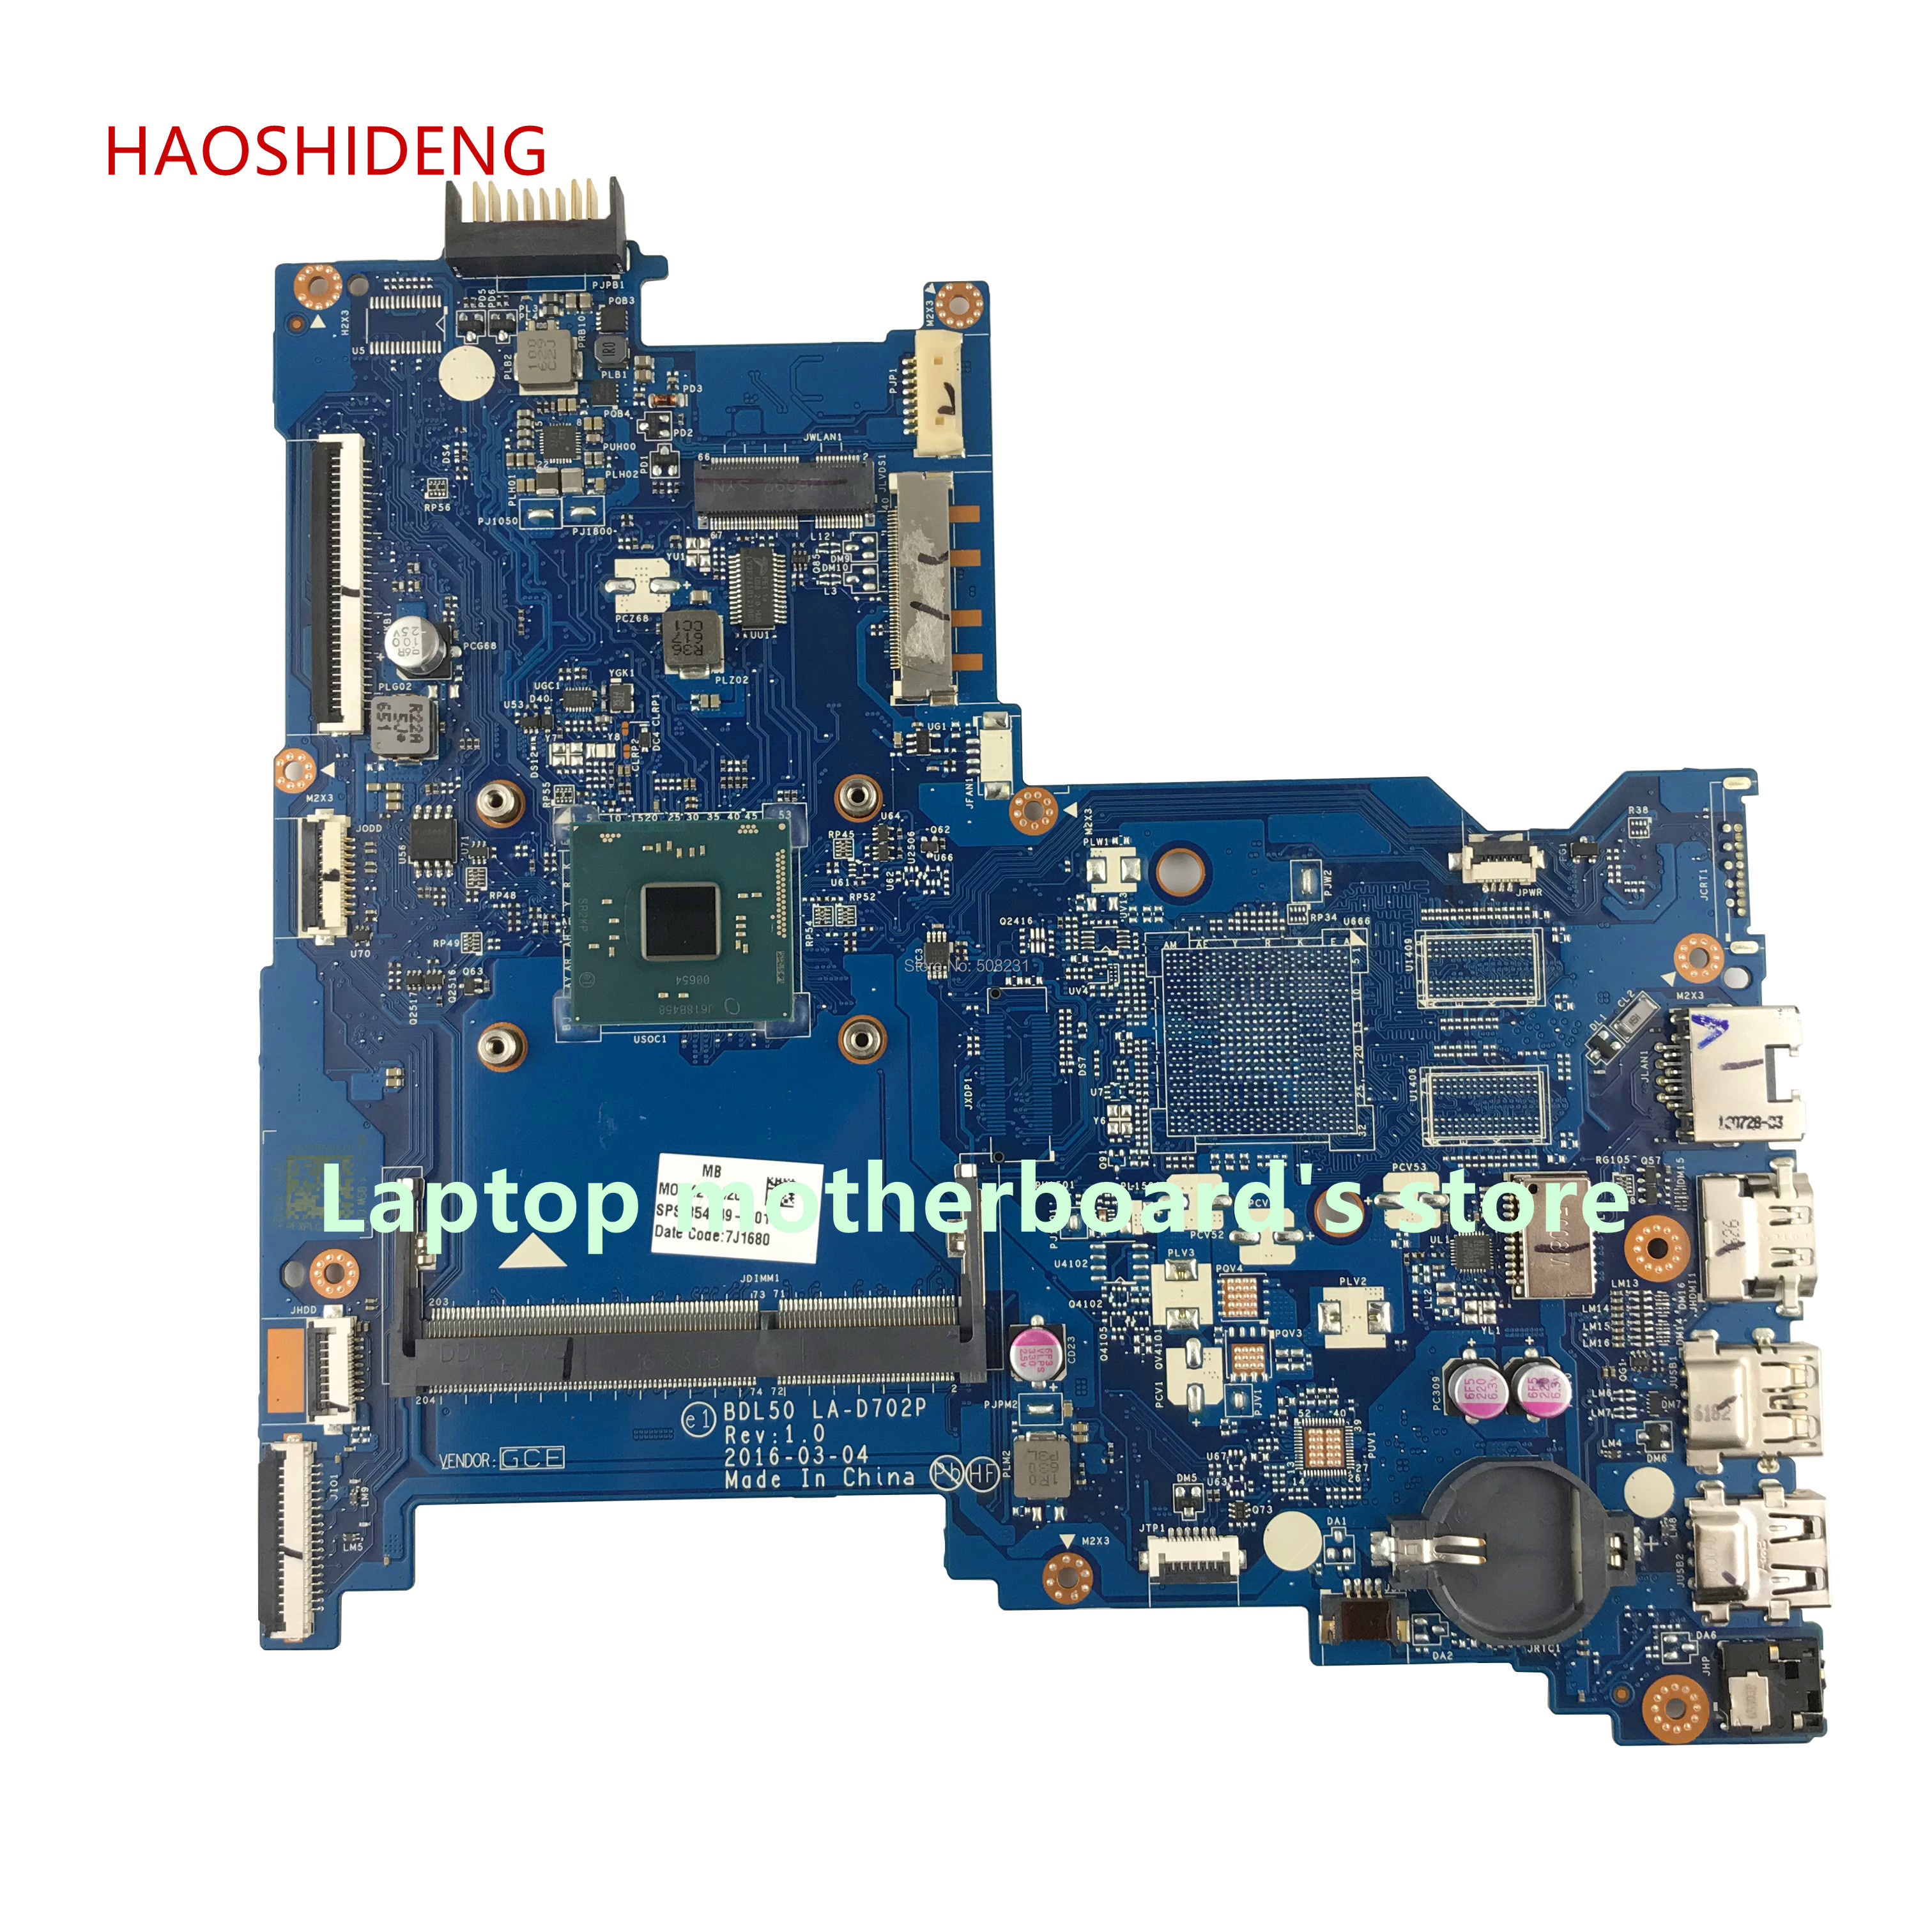 HAOSHIDENG 854949-601 BDL50 LA-D702P mainboard for HP NOTEBOOK 15-AC 15-AY 15-15-AY083NR laptop motherboard with N3160 processor free shipping 854949 601 bdl50 la d702p for hp notebook 15 ay series motherboard with n3160 cpu all functions 100% fully tested